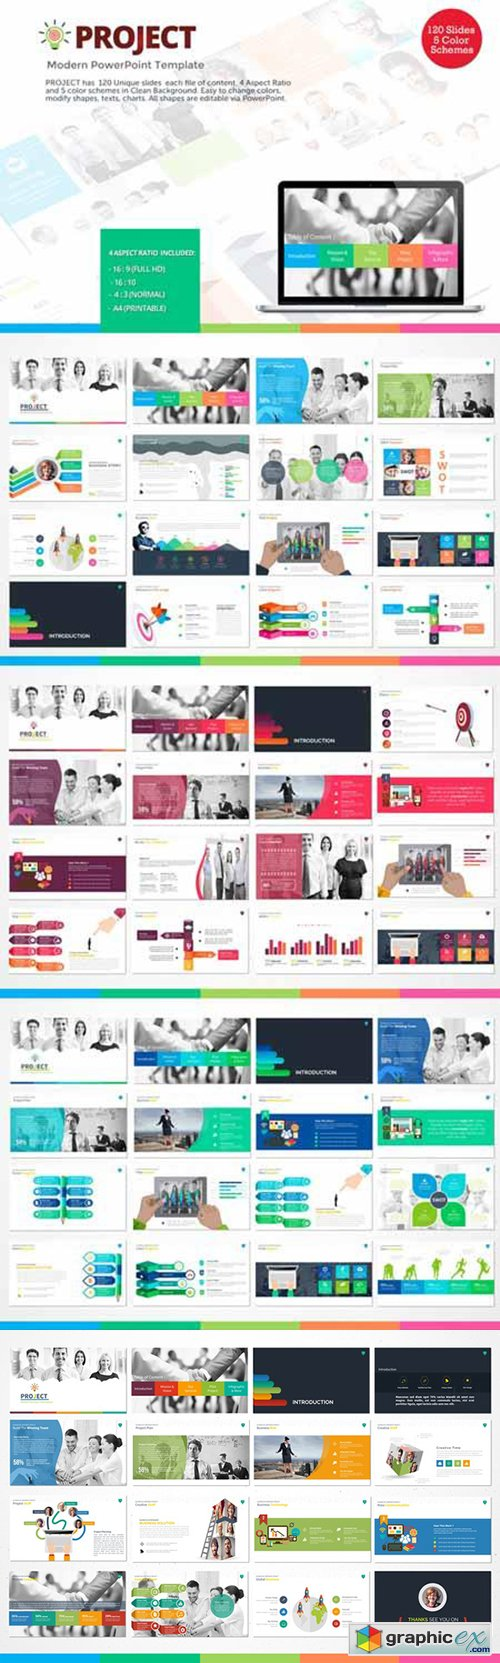 Project modern powerpoint template free download vector stock project modern powerpoint template toneelgroepblik Image collections